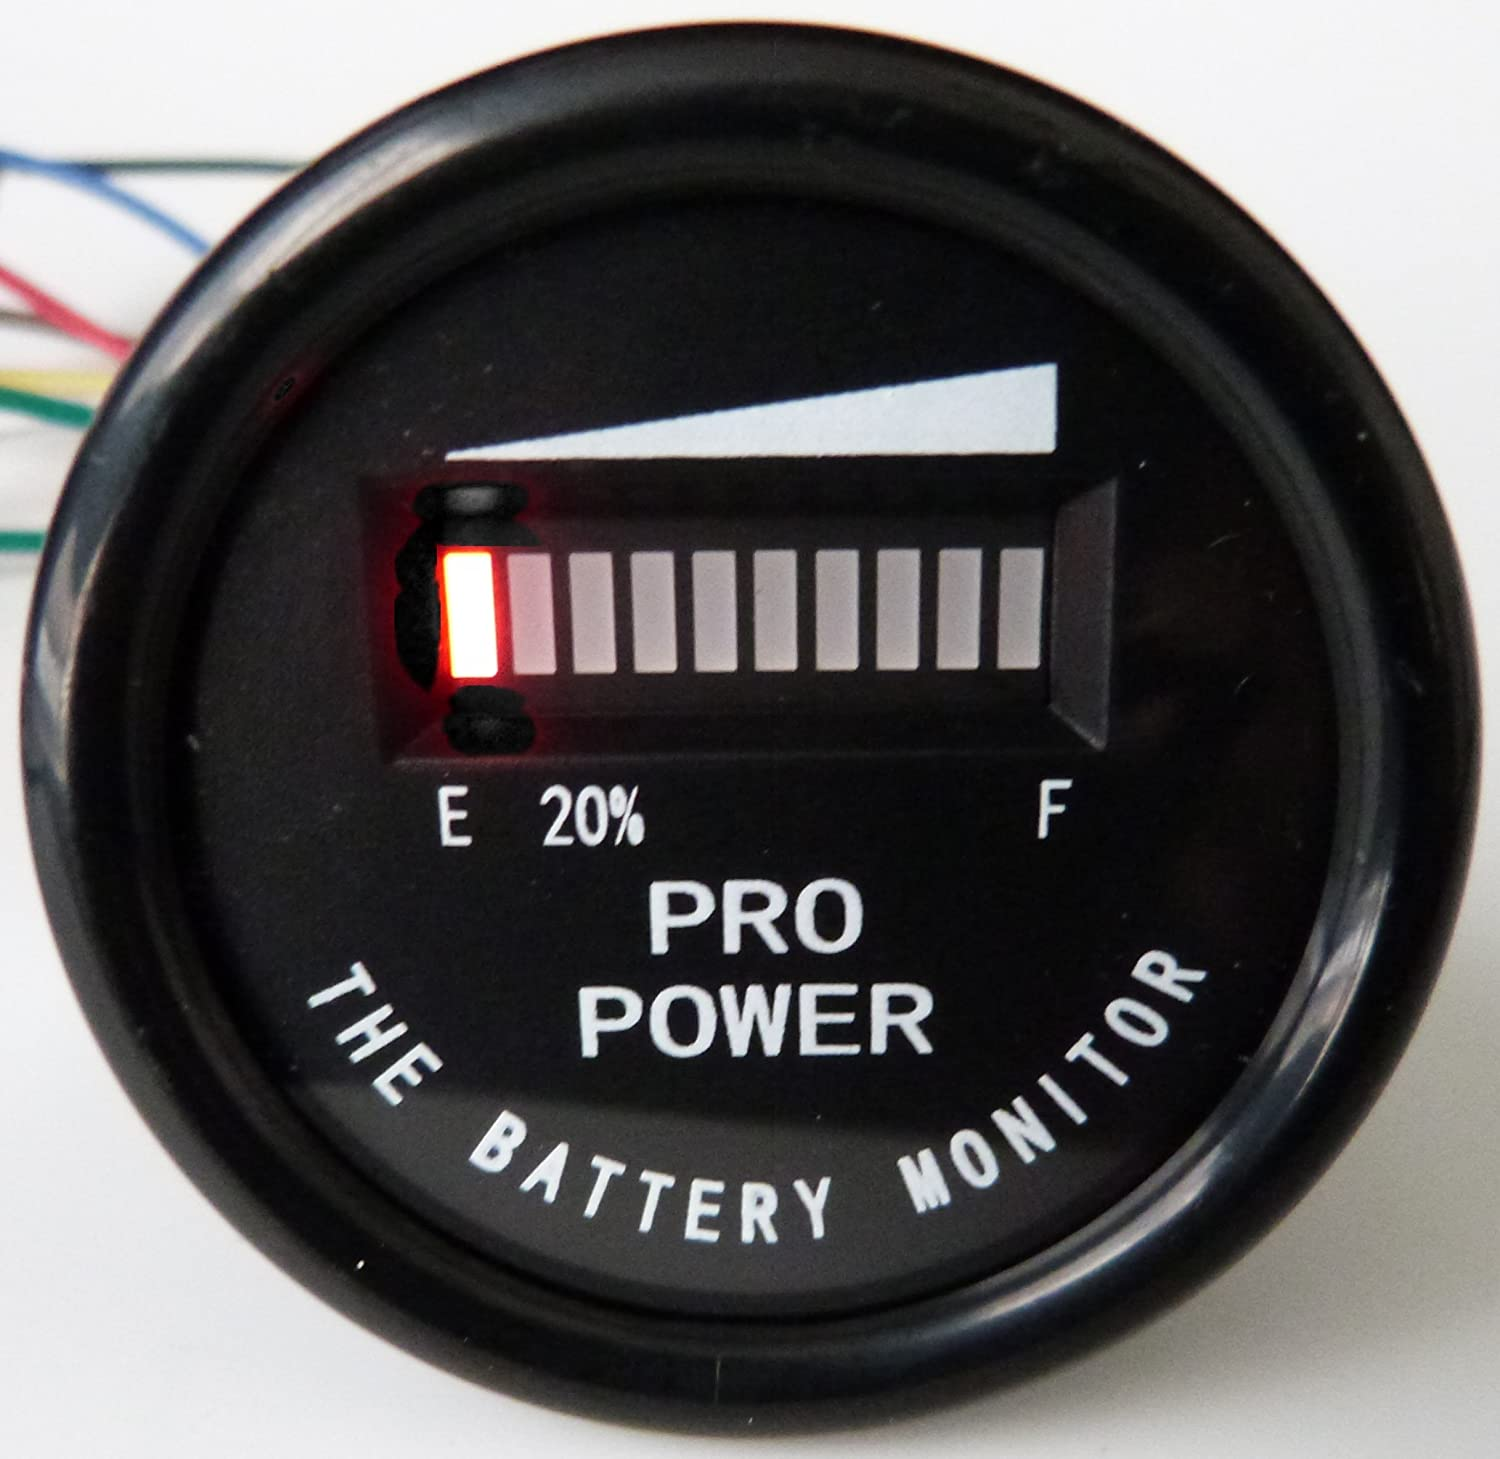 Amazon.com : PRO12-48M ProPower's Golf Cart Battery Indicator Ezgo Yamaha  Club Car 12, 24, 36, 48 VDC - Works on Trojan, Exide and all batteries :  Sports & ...